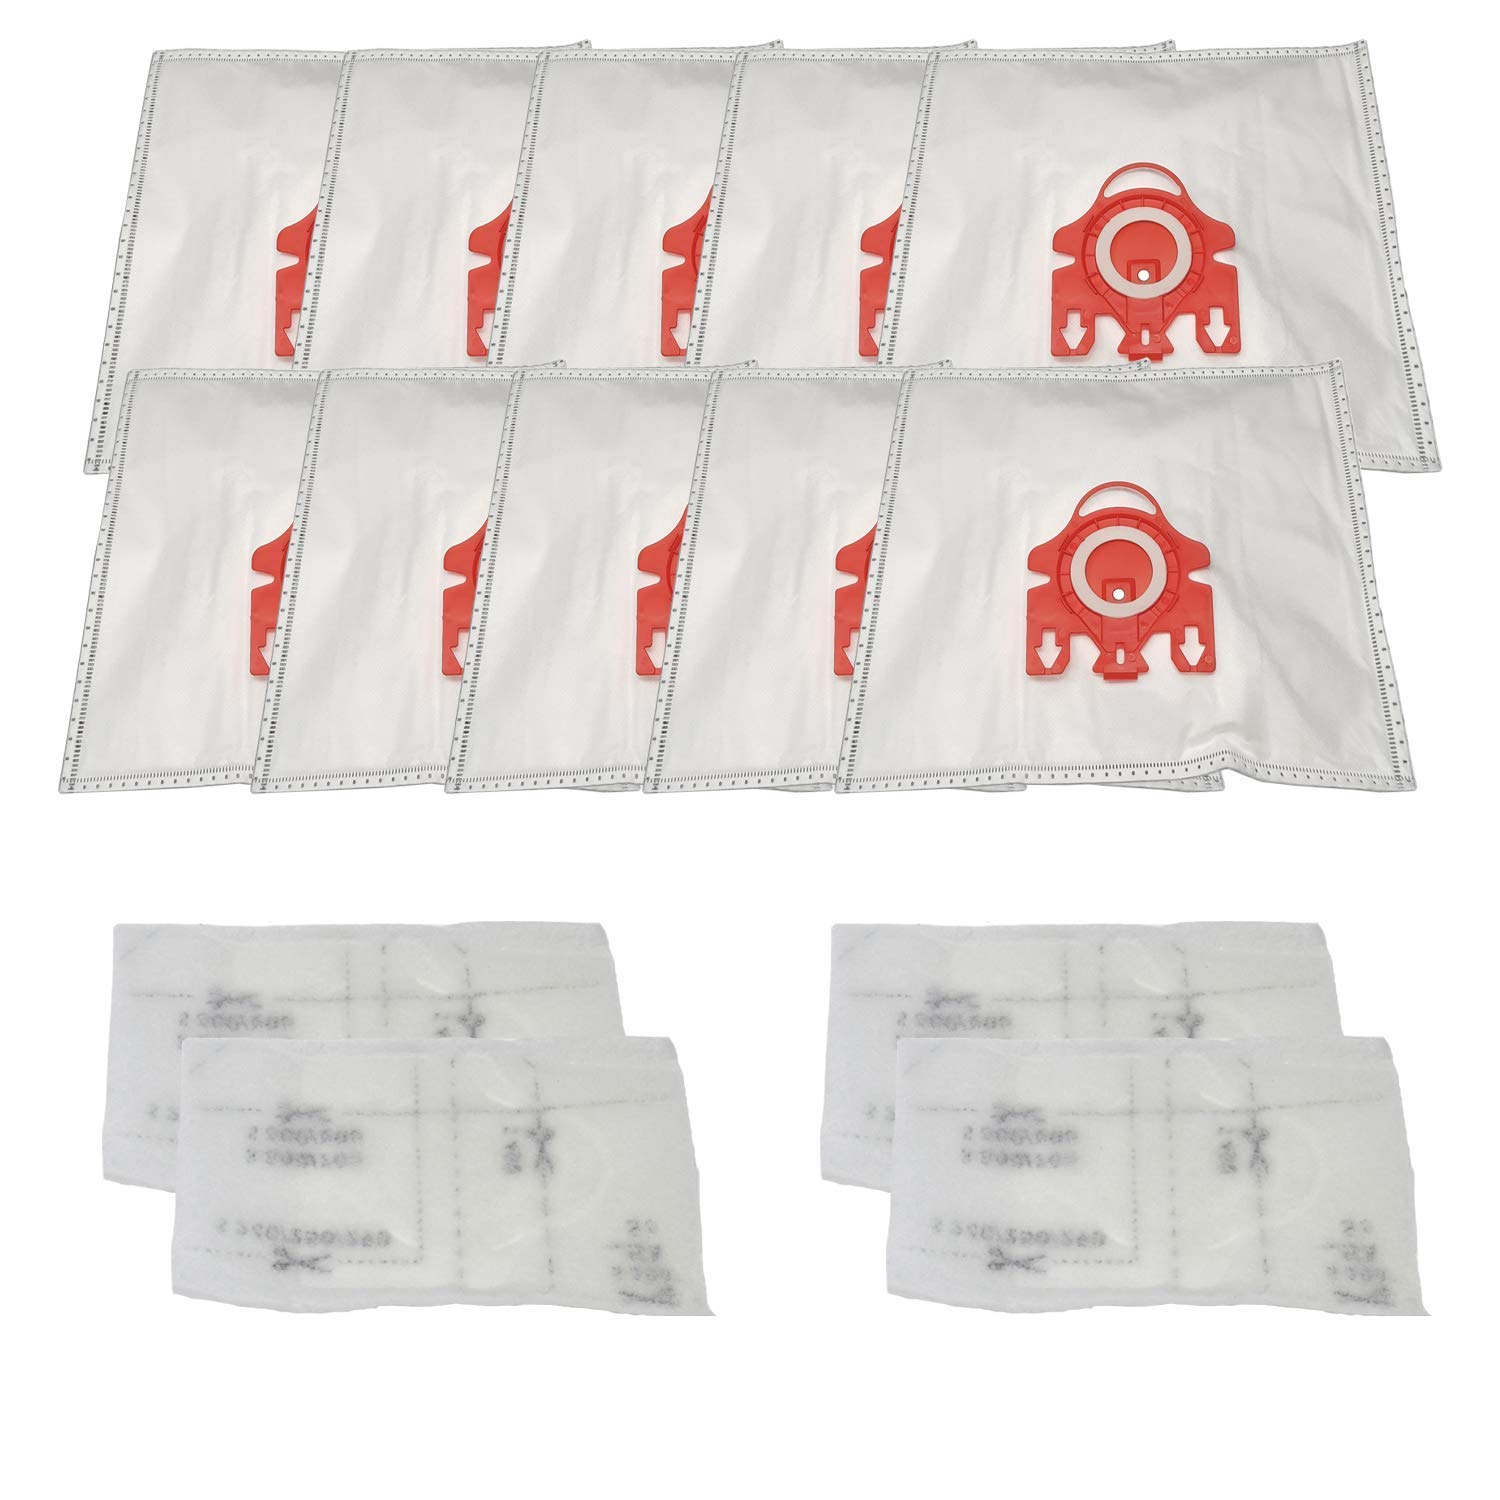 Compatible Vacuum Bags/Filters(10 Bags + 4 Filters) for Miele FJM Airclean Vacuum Bag. Replaces Part 7291640.Fits S241-S256iCompatible Vacuum Bags/Filters(10 Bags + 4 Filters) for Miele FJM Airclean Vacuum Bag. Replaces Part 7291640.Fits S241-S256i